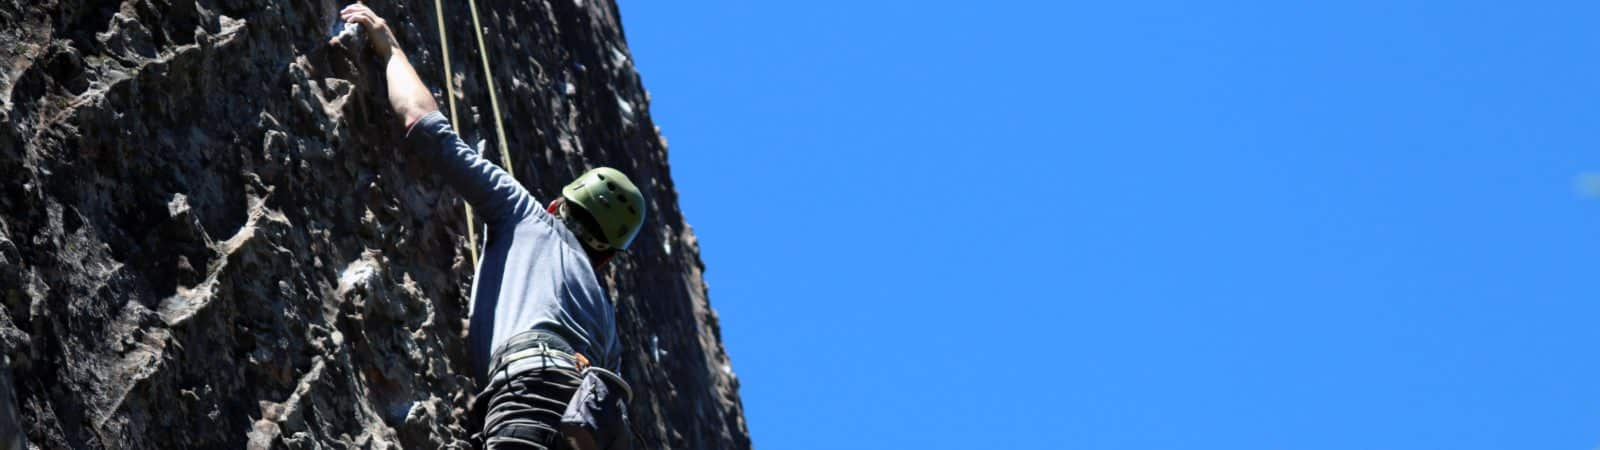 Rock climbing courses for all levels in Patagonia and Cordoba